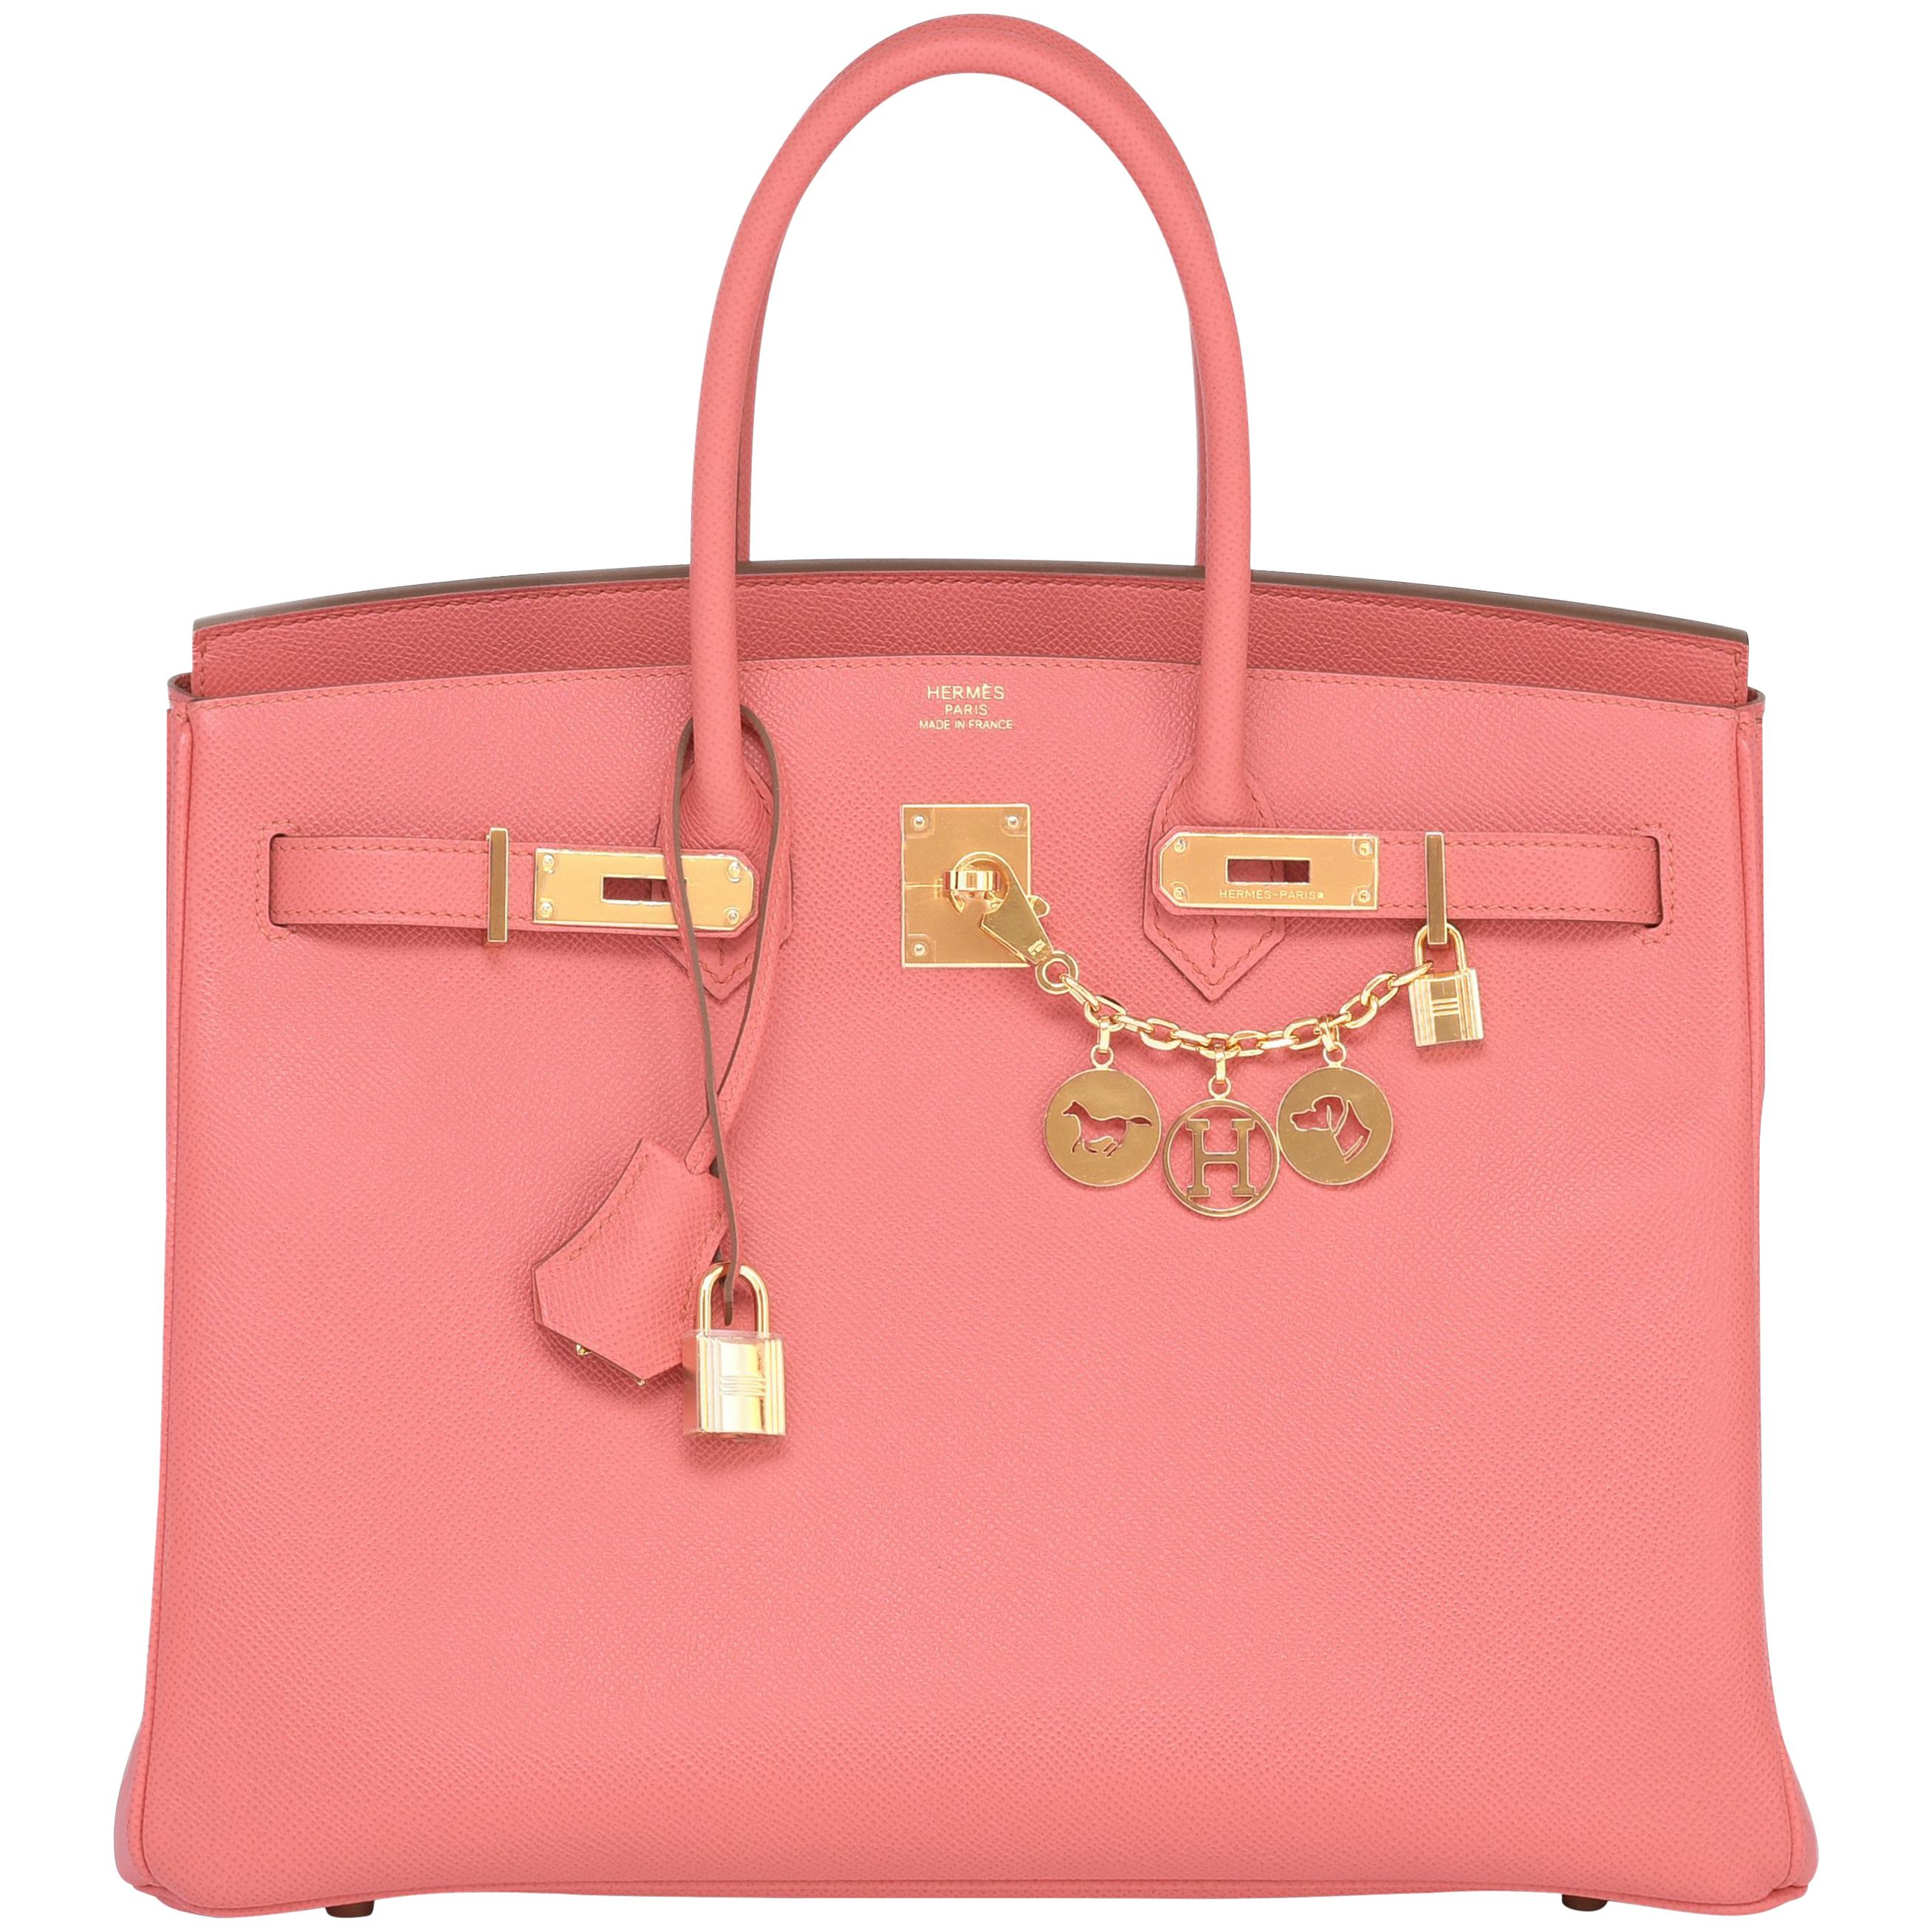 67cbbe914cad Pink Hermes Bags - 125 For Sale on 1stdibs